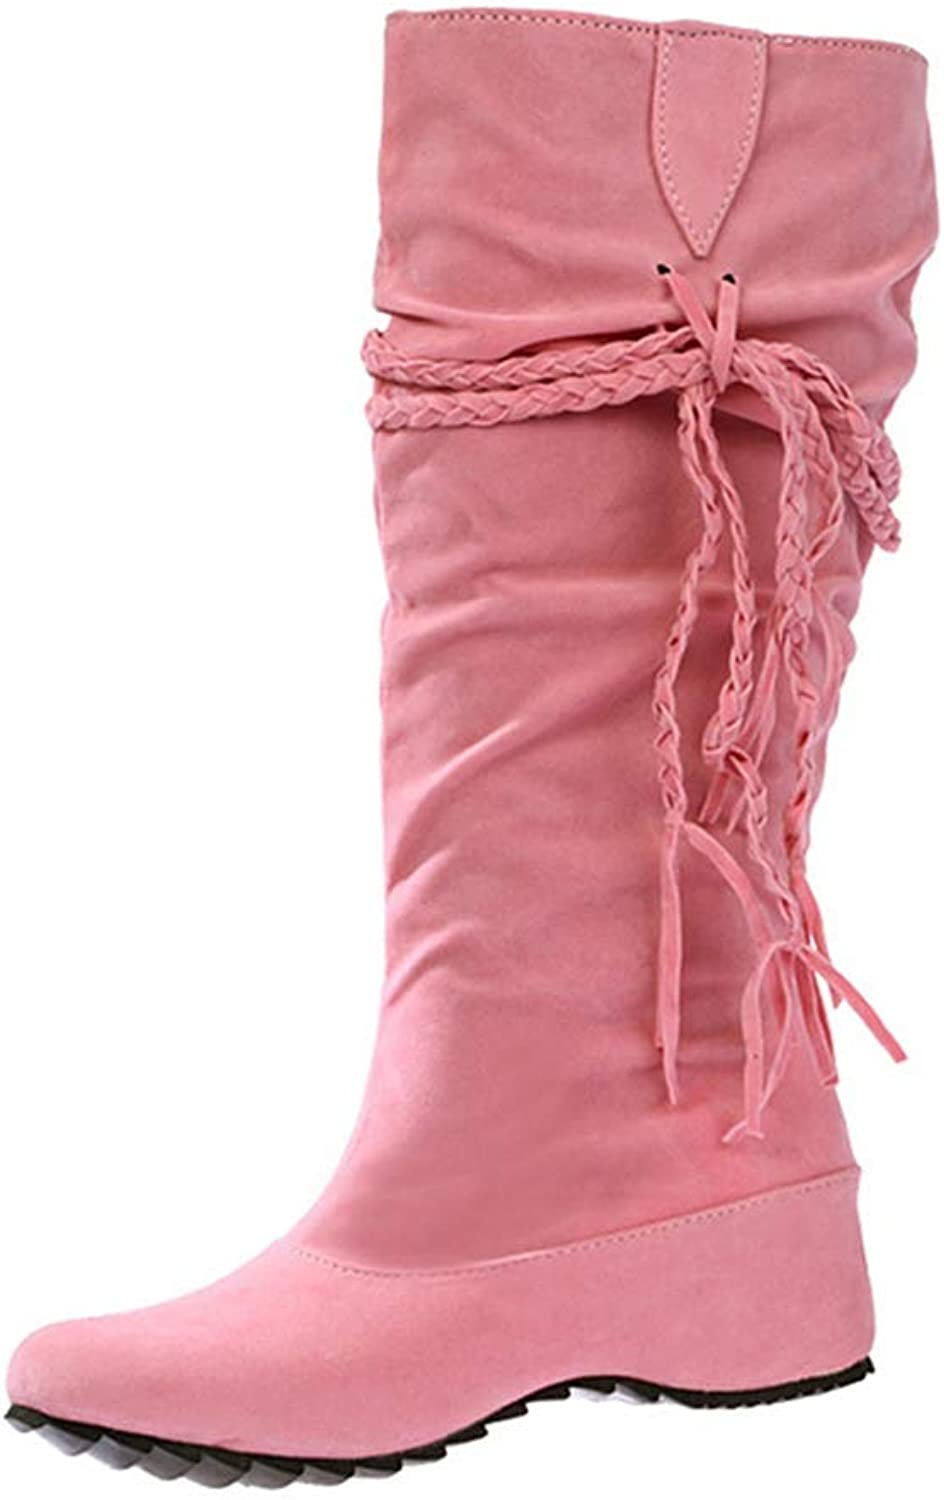 Women Boots Autumn Winter Fringe Half Knee High Boots Ladies Tassel Fashion shoes